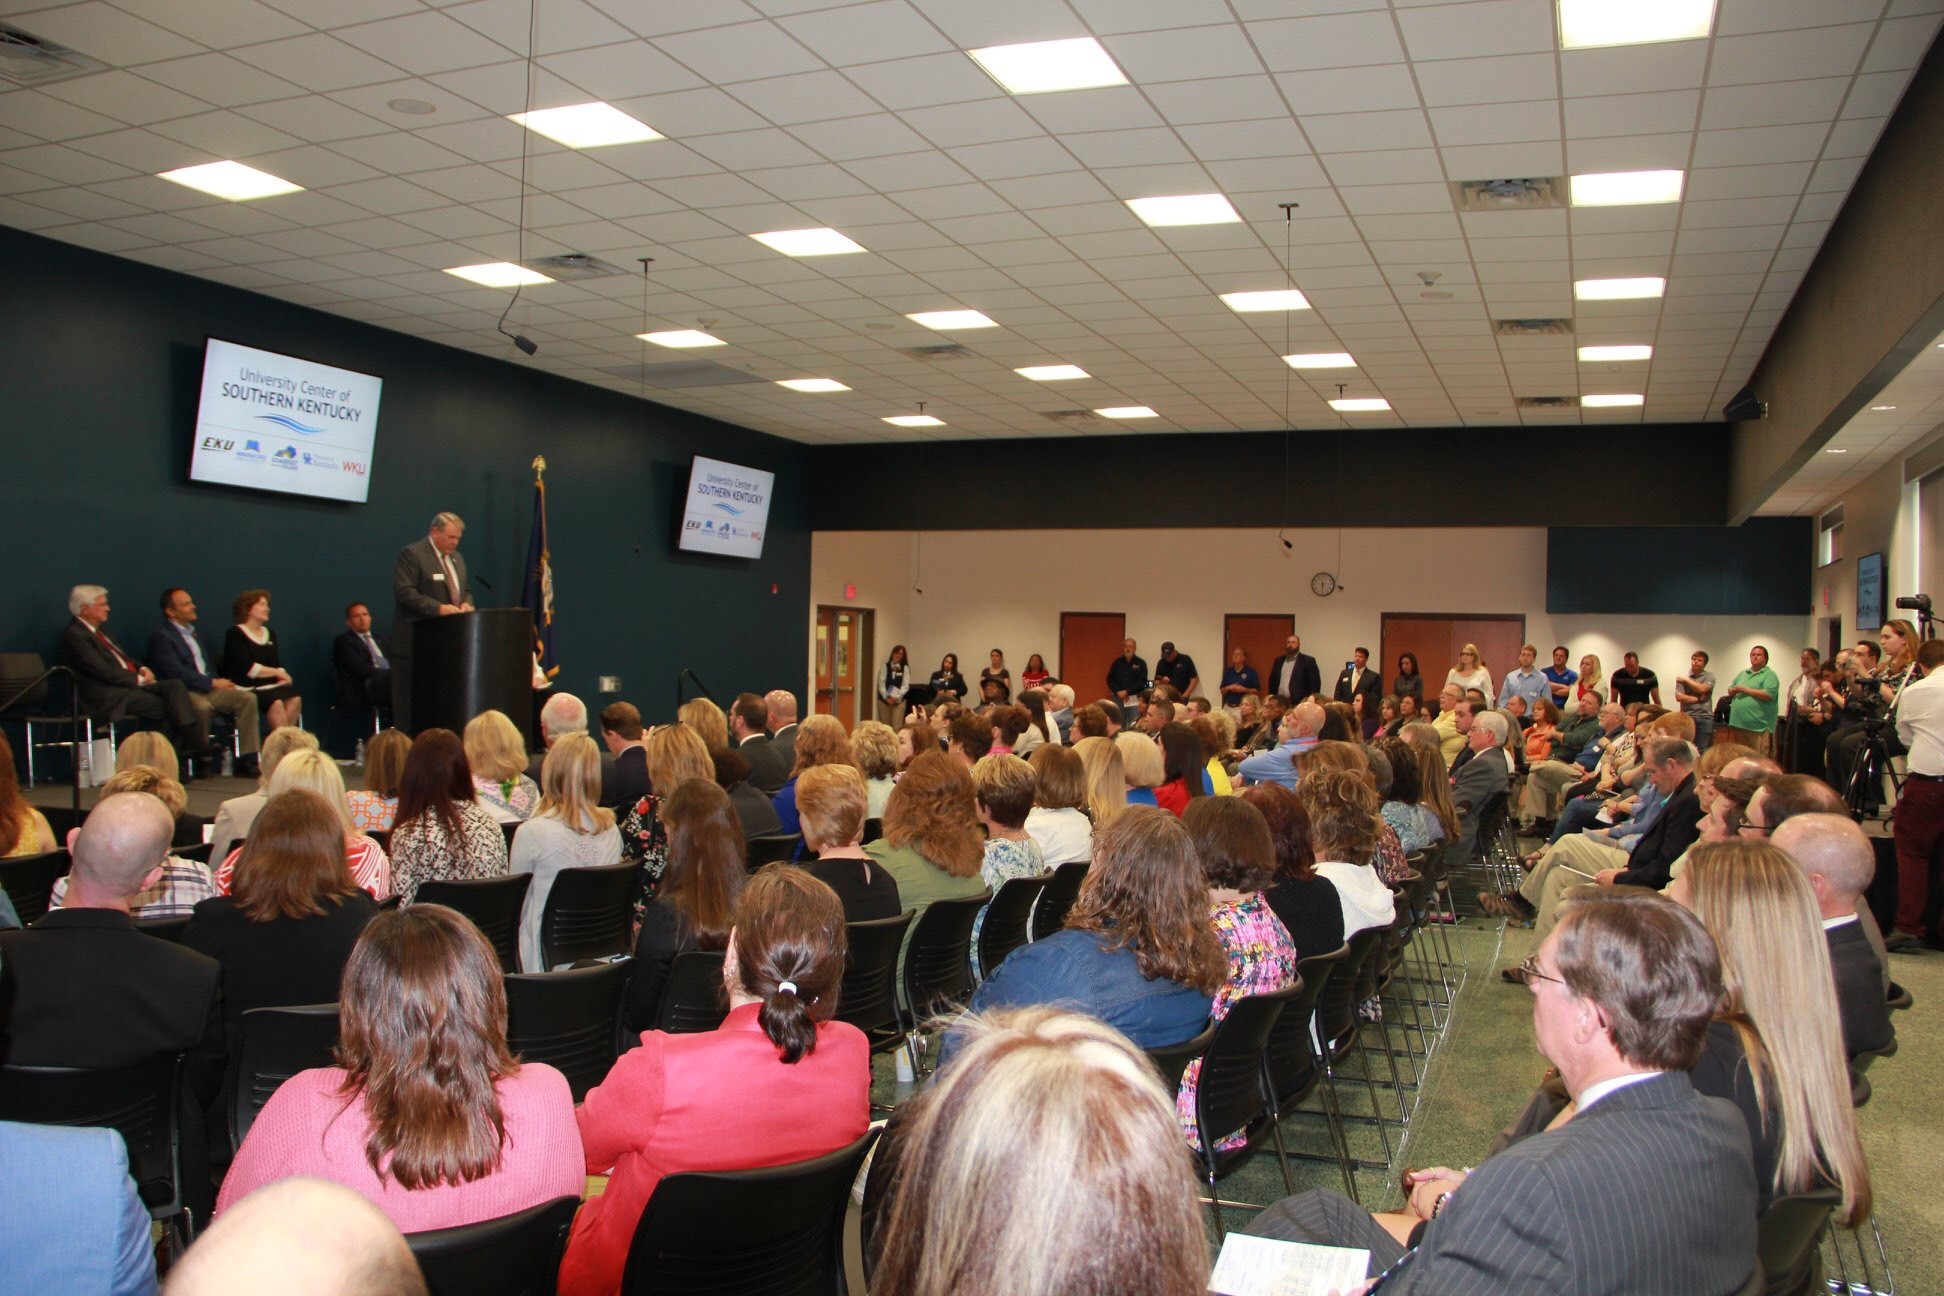 A standing-room-only crowd assembled at Somerset Community College on Monday, May 6 for an announcement of the four founding partners in the University Center of Southern Kentucky.